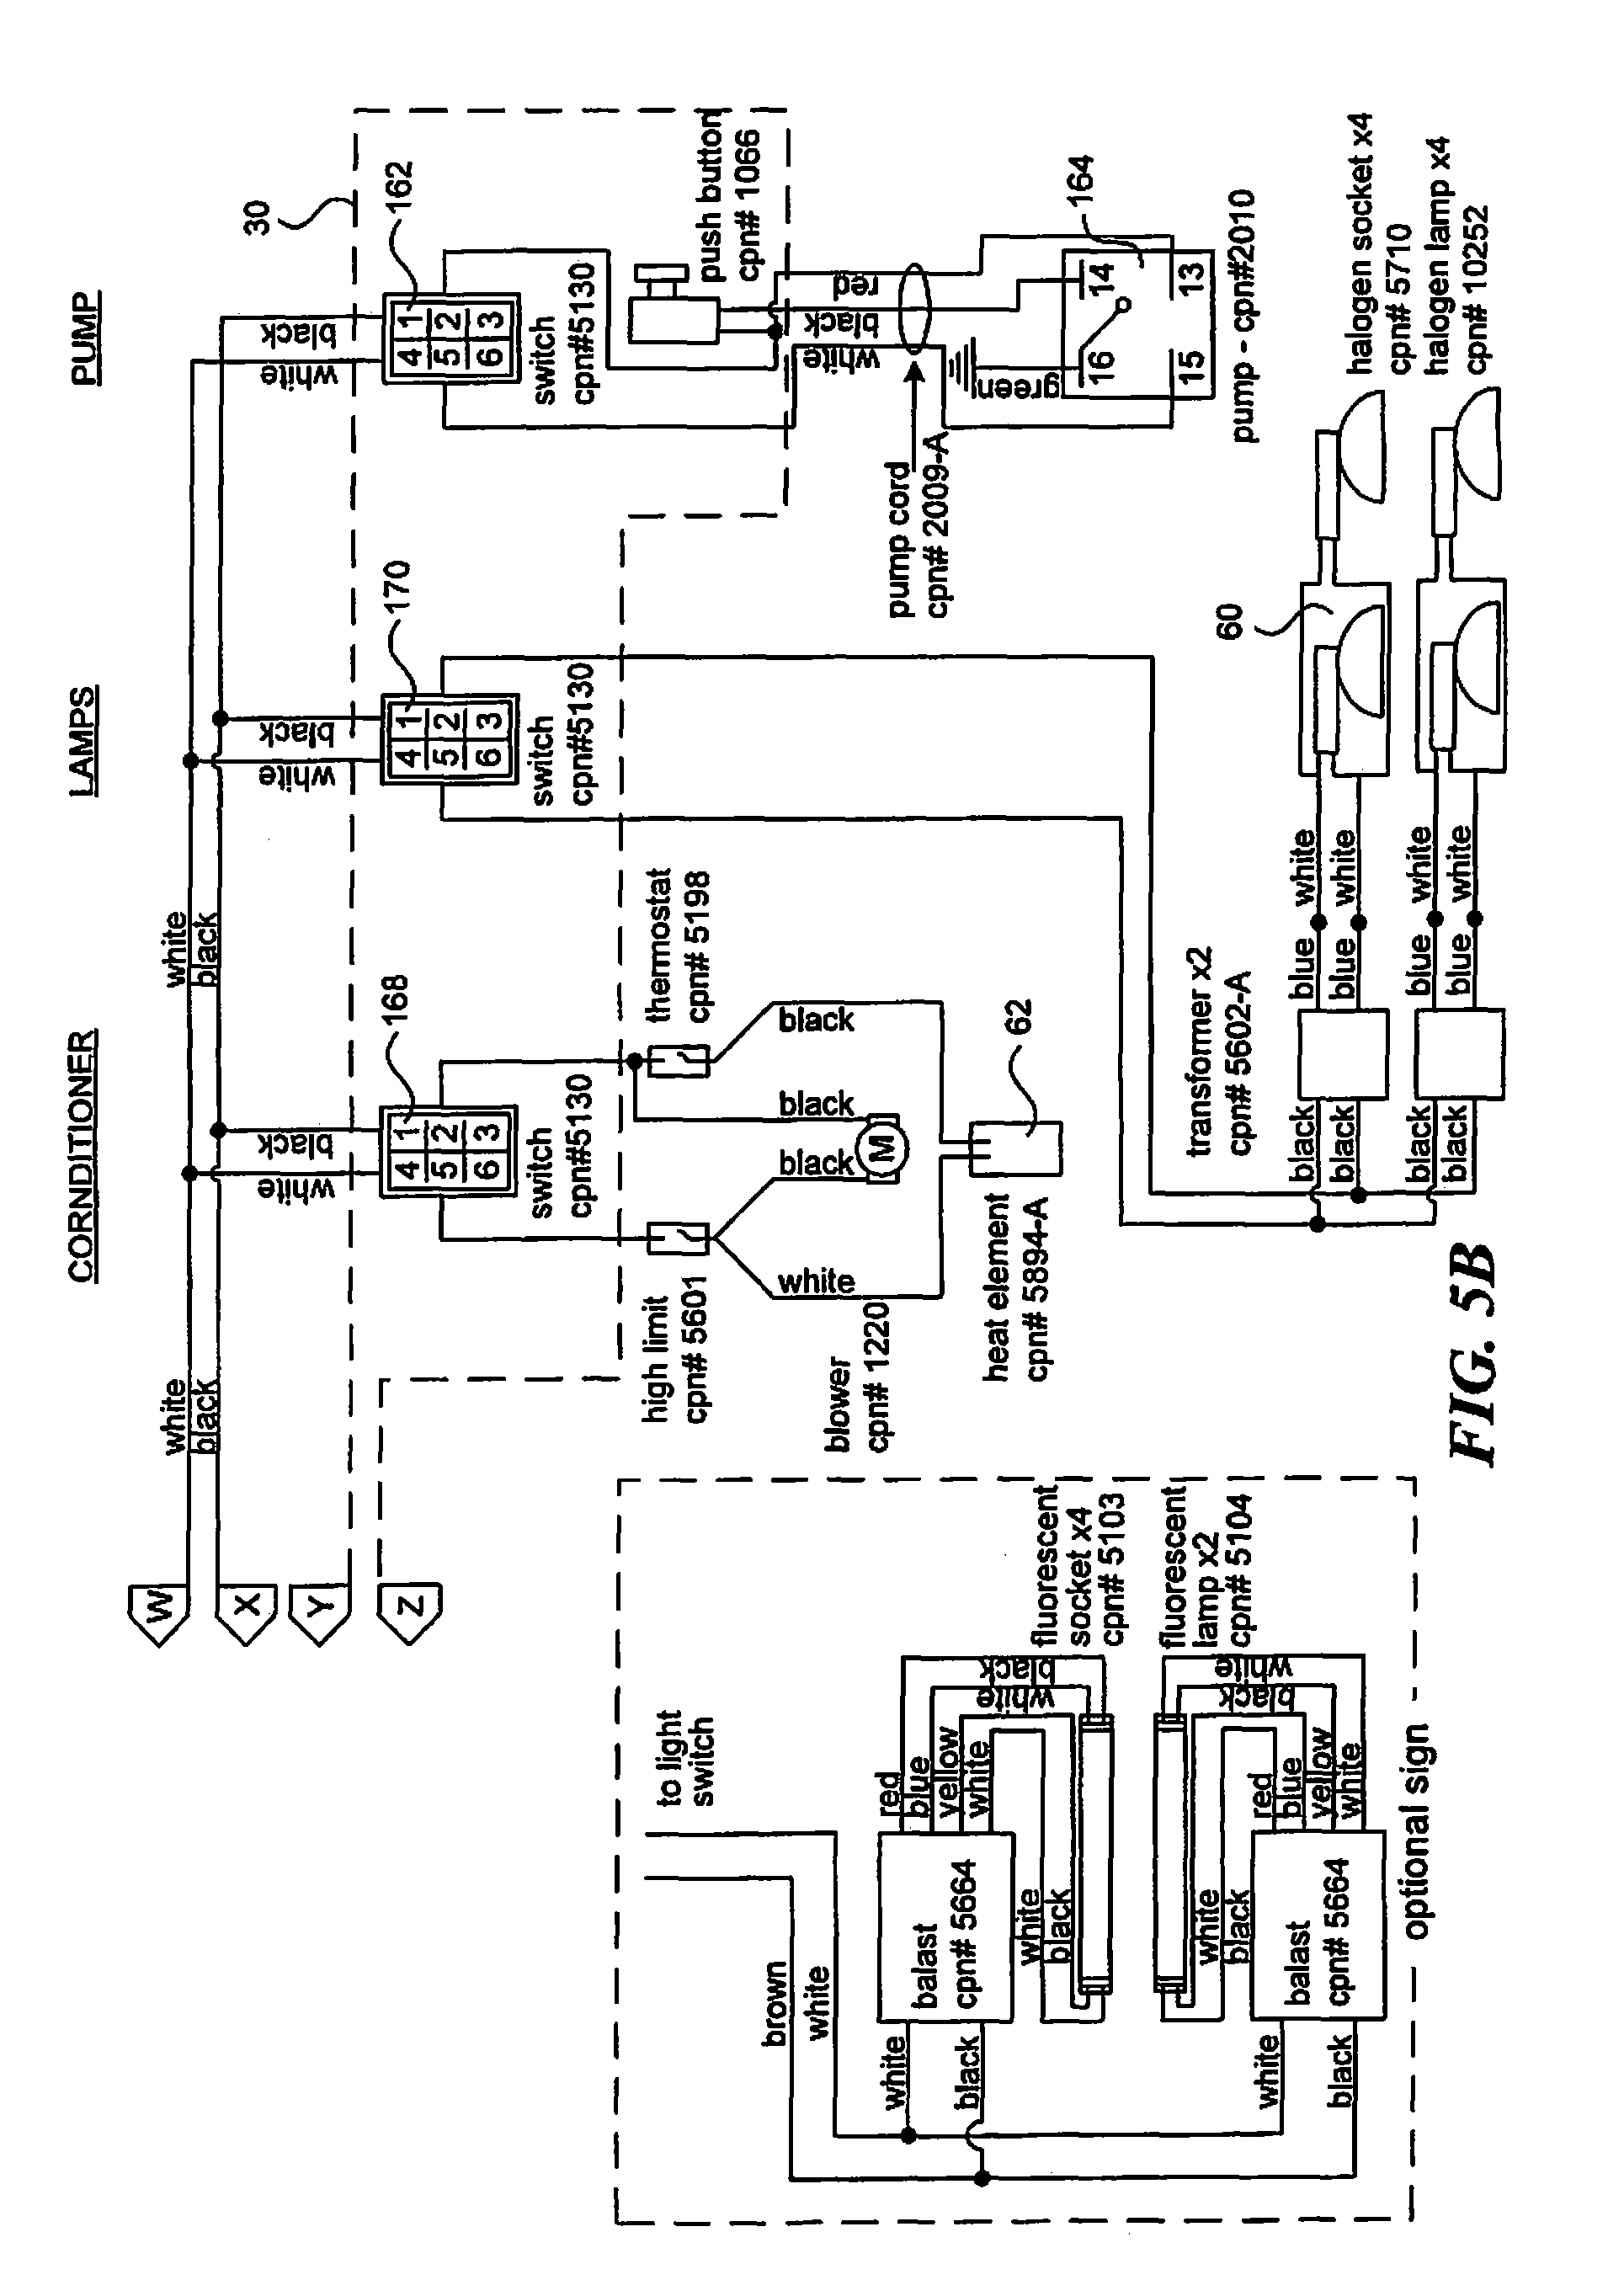 hight resolution of ansul schematic